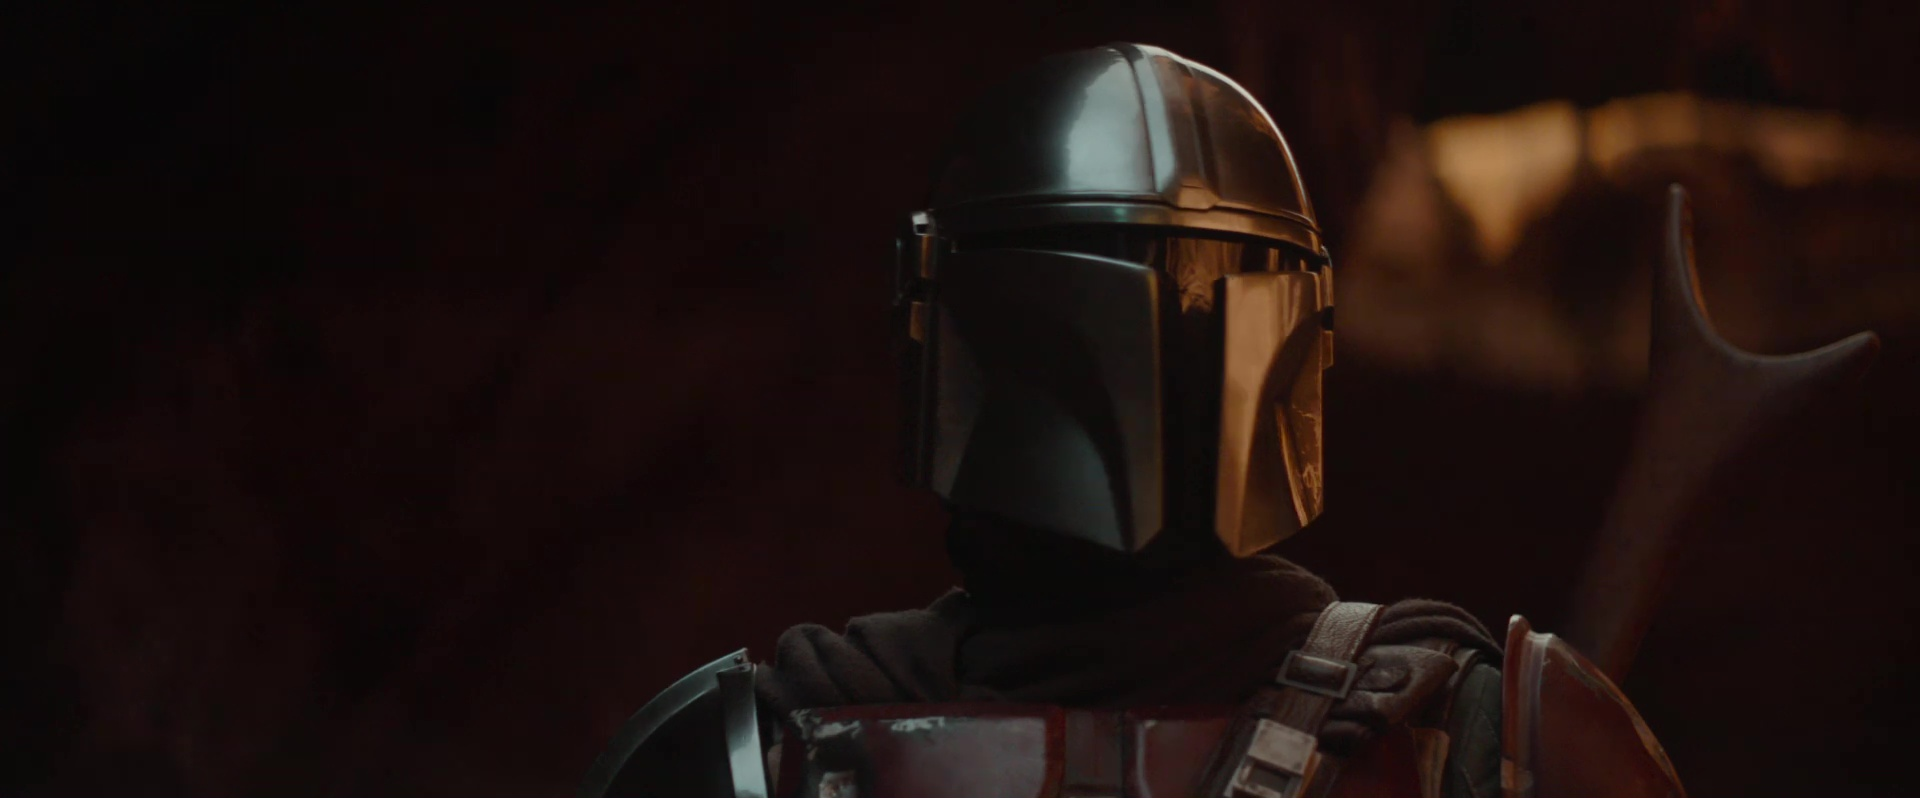 Capture mandalorian star wars lucasfilm disney